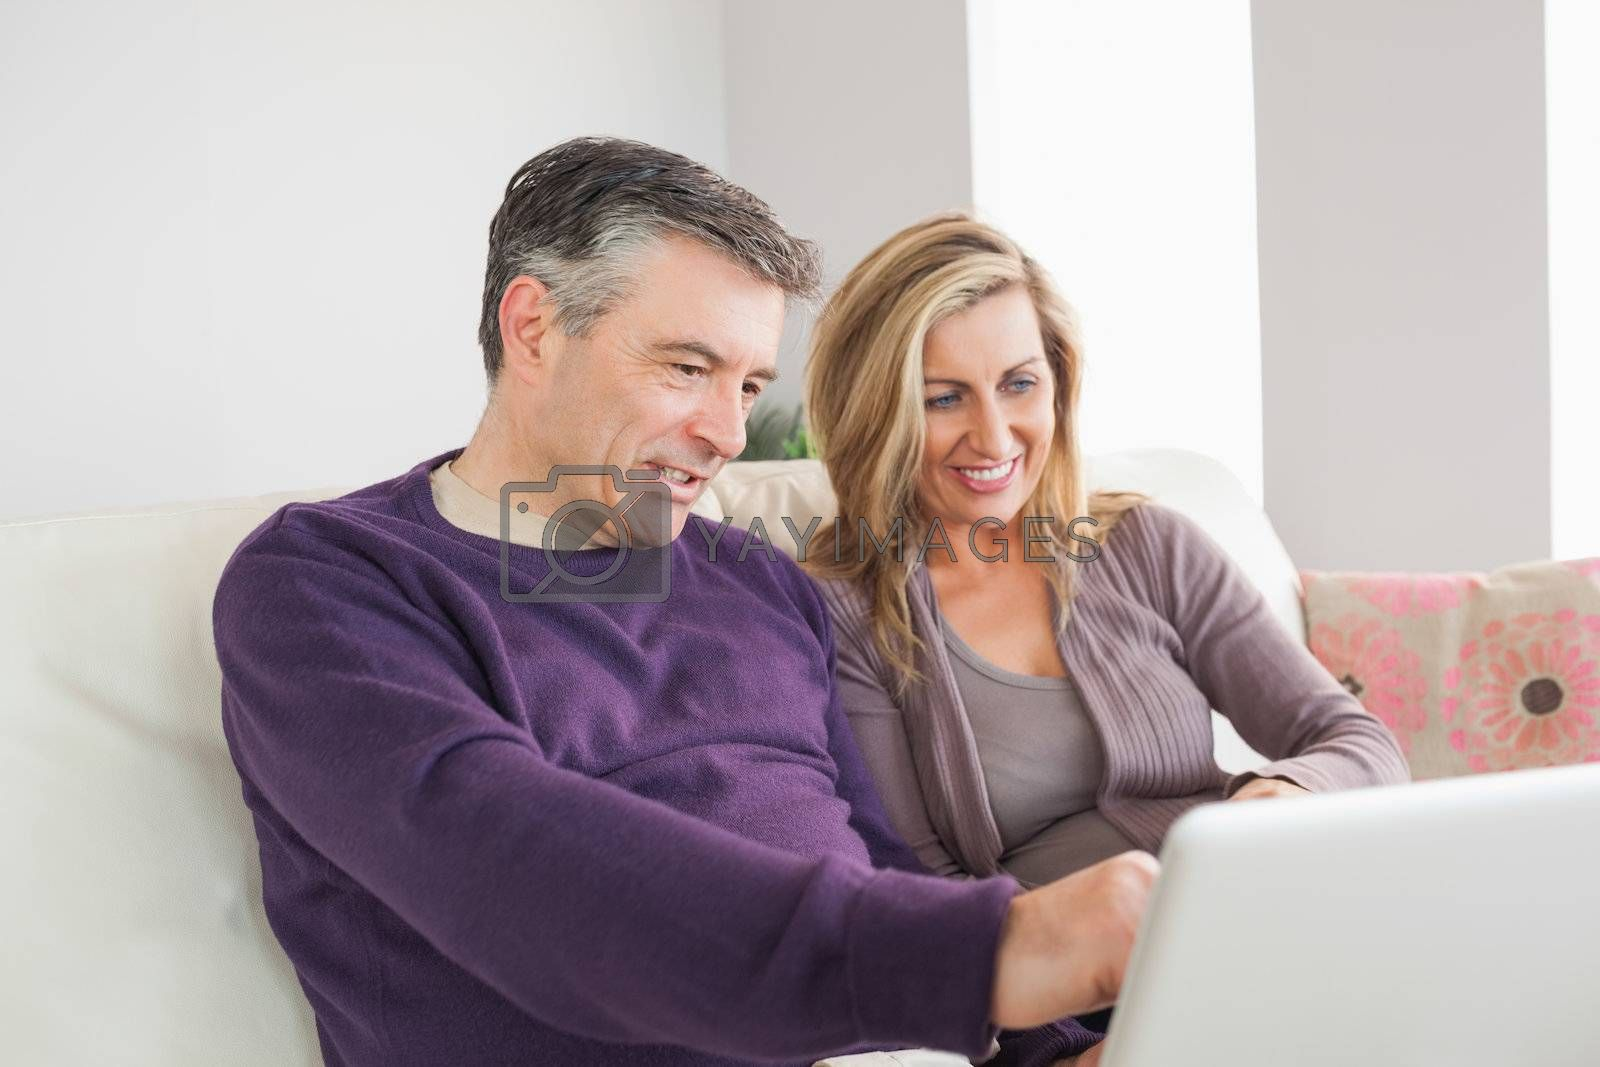 Happy couple watching their laptop by Wavebreakmedia